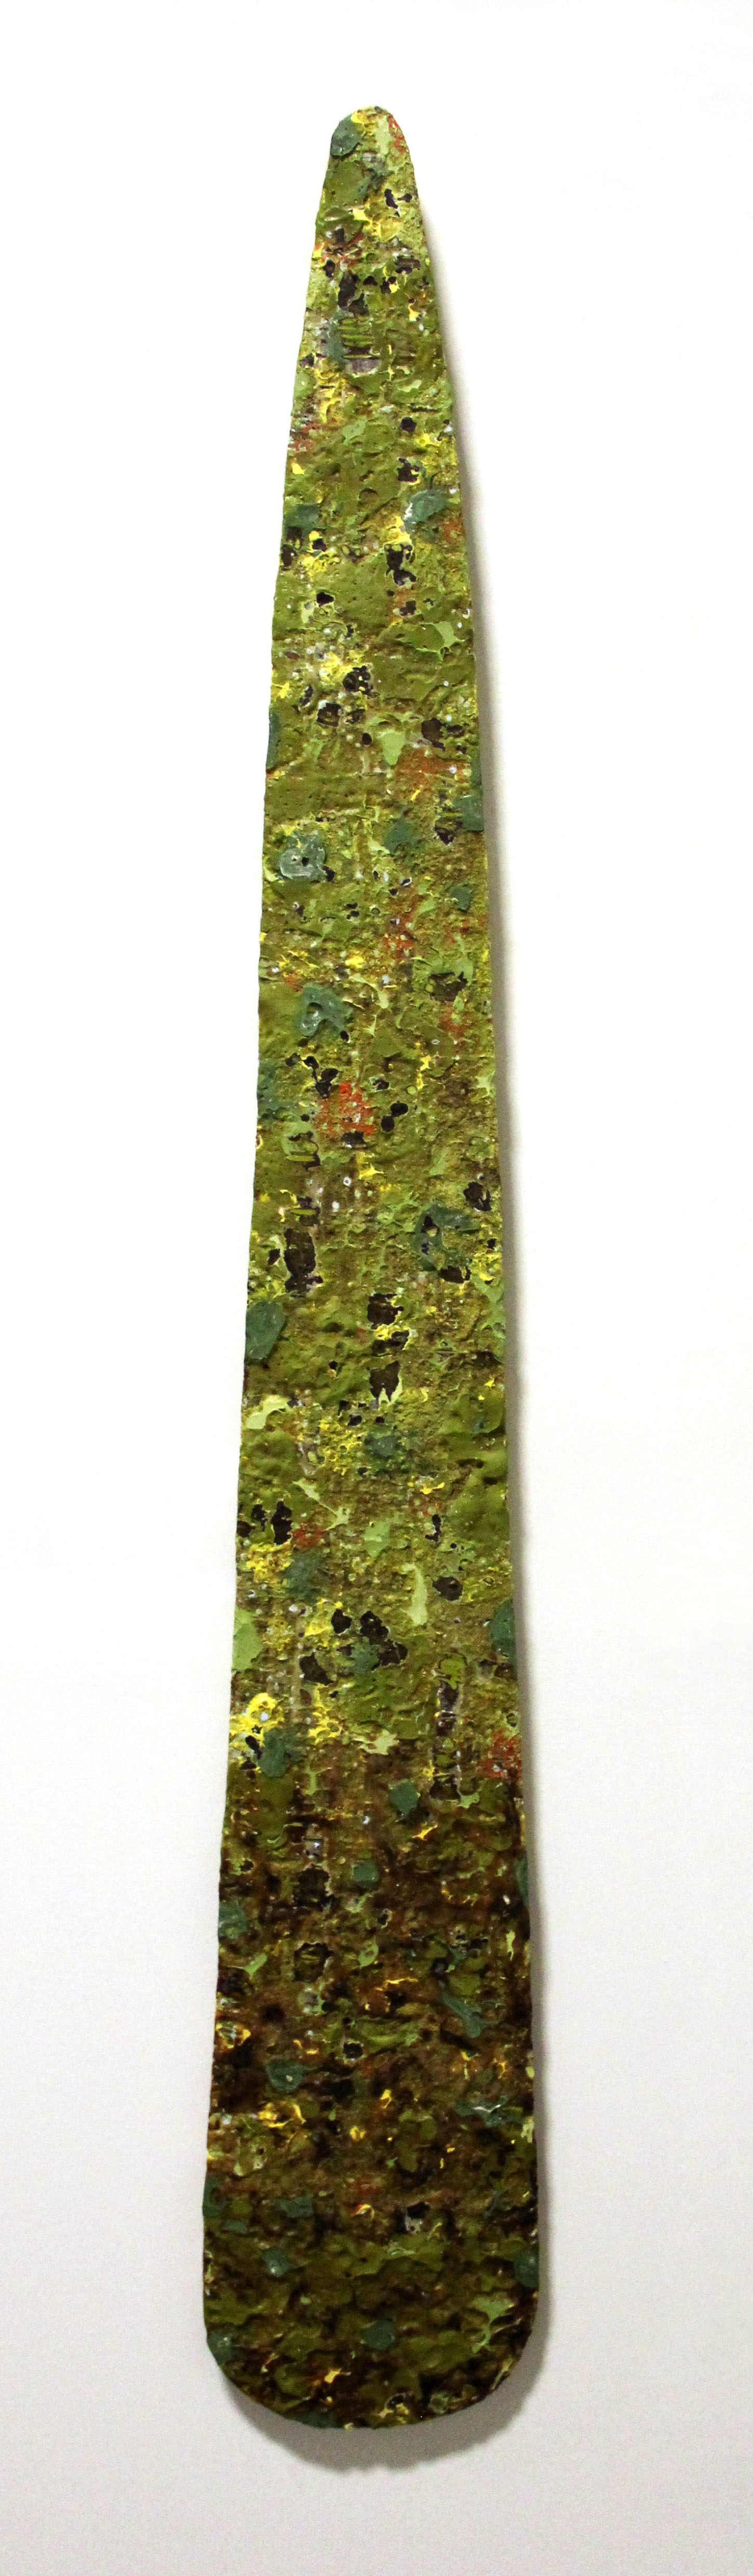 gopher agave  acrylic, mixed media on wood  72 x 11 inches